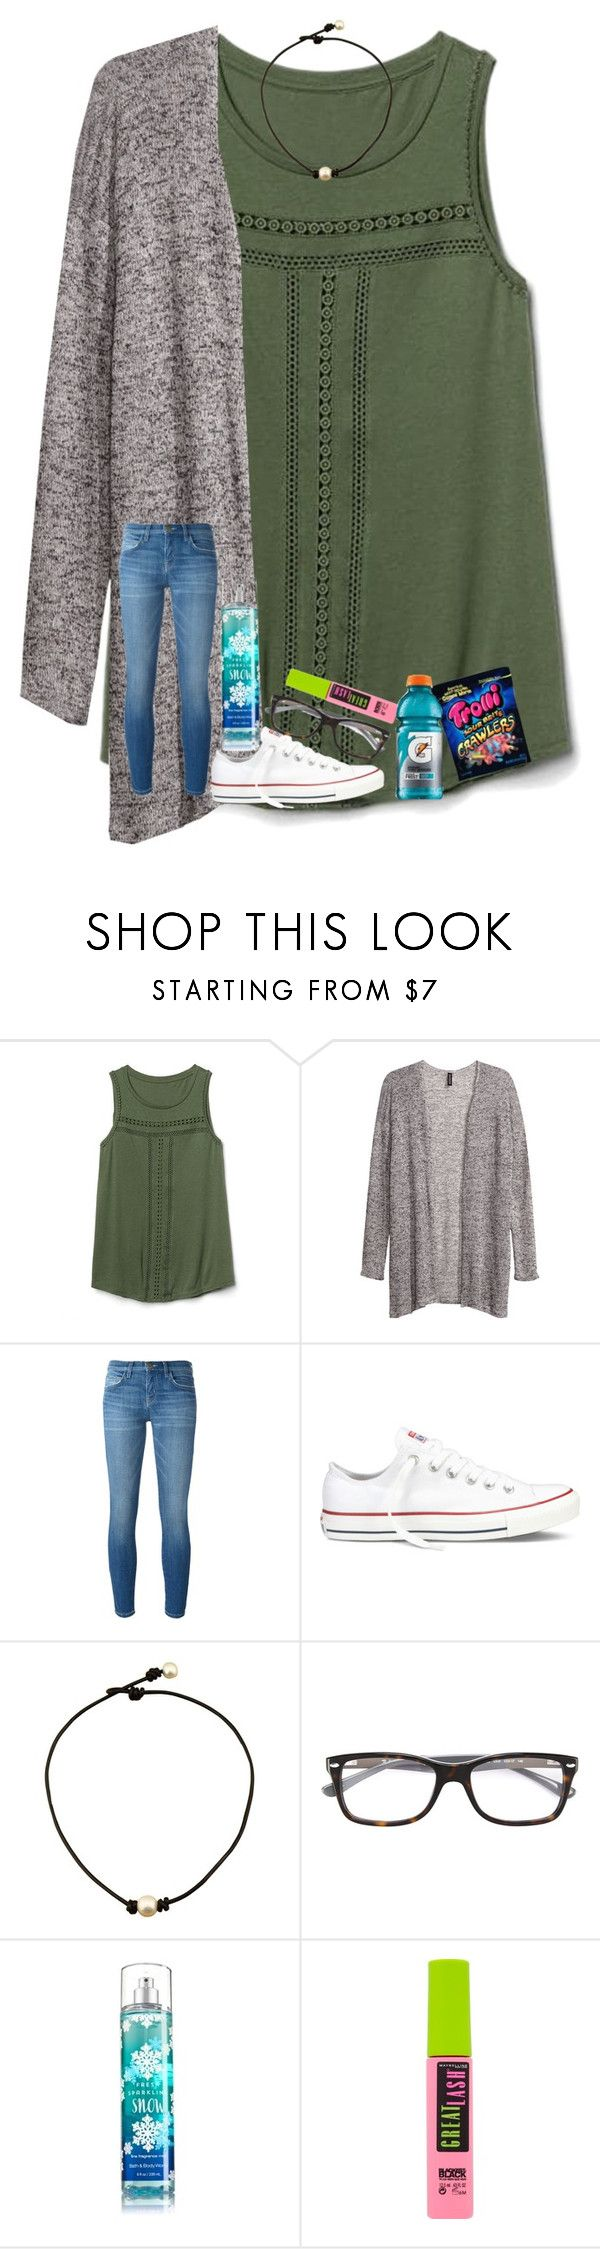 """""""baby you're a firework """" by shenry2016 ❤ liked on Polyvore featuring Gap, H&M, Current/Elliott, Converse, Ray-Ban and Maybelline"""